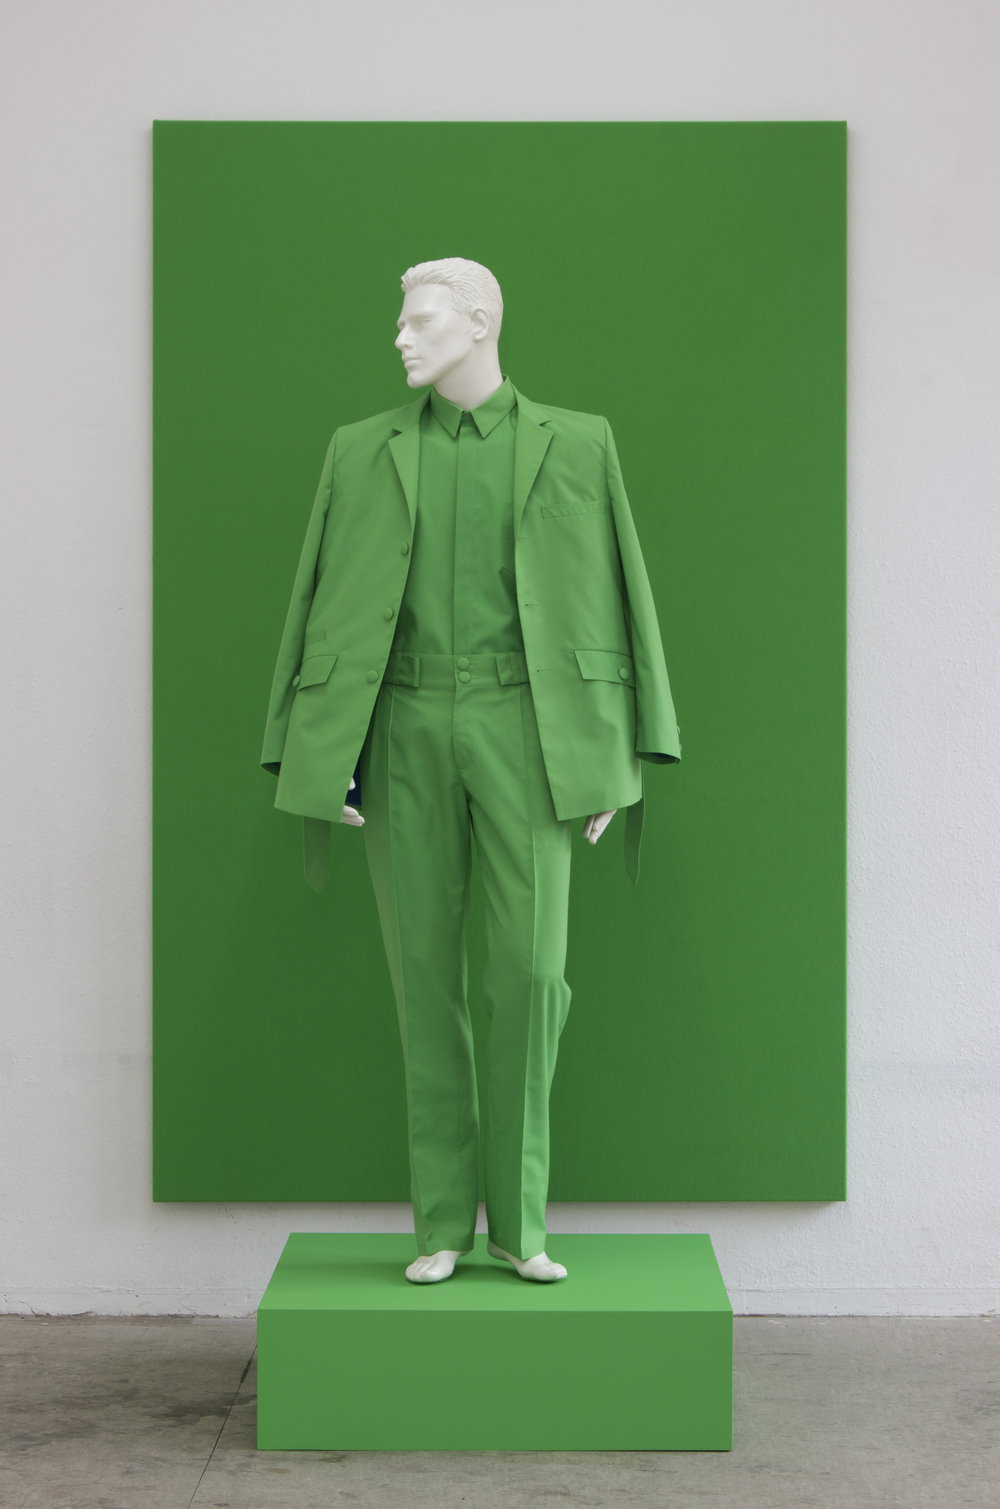 (from: contemporaryartdaily.comClaus Rasmussen at Neue Alte Brücke)